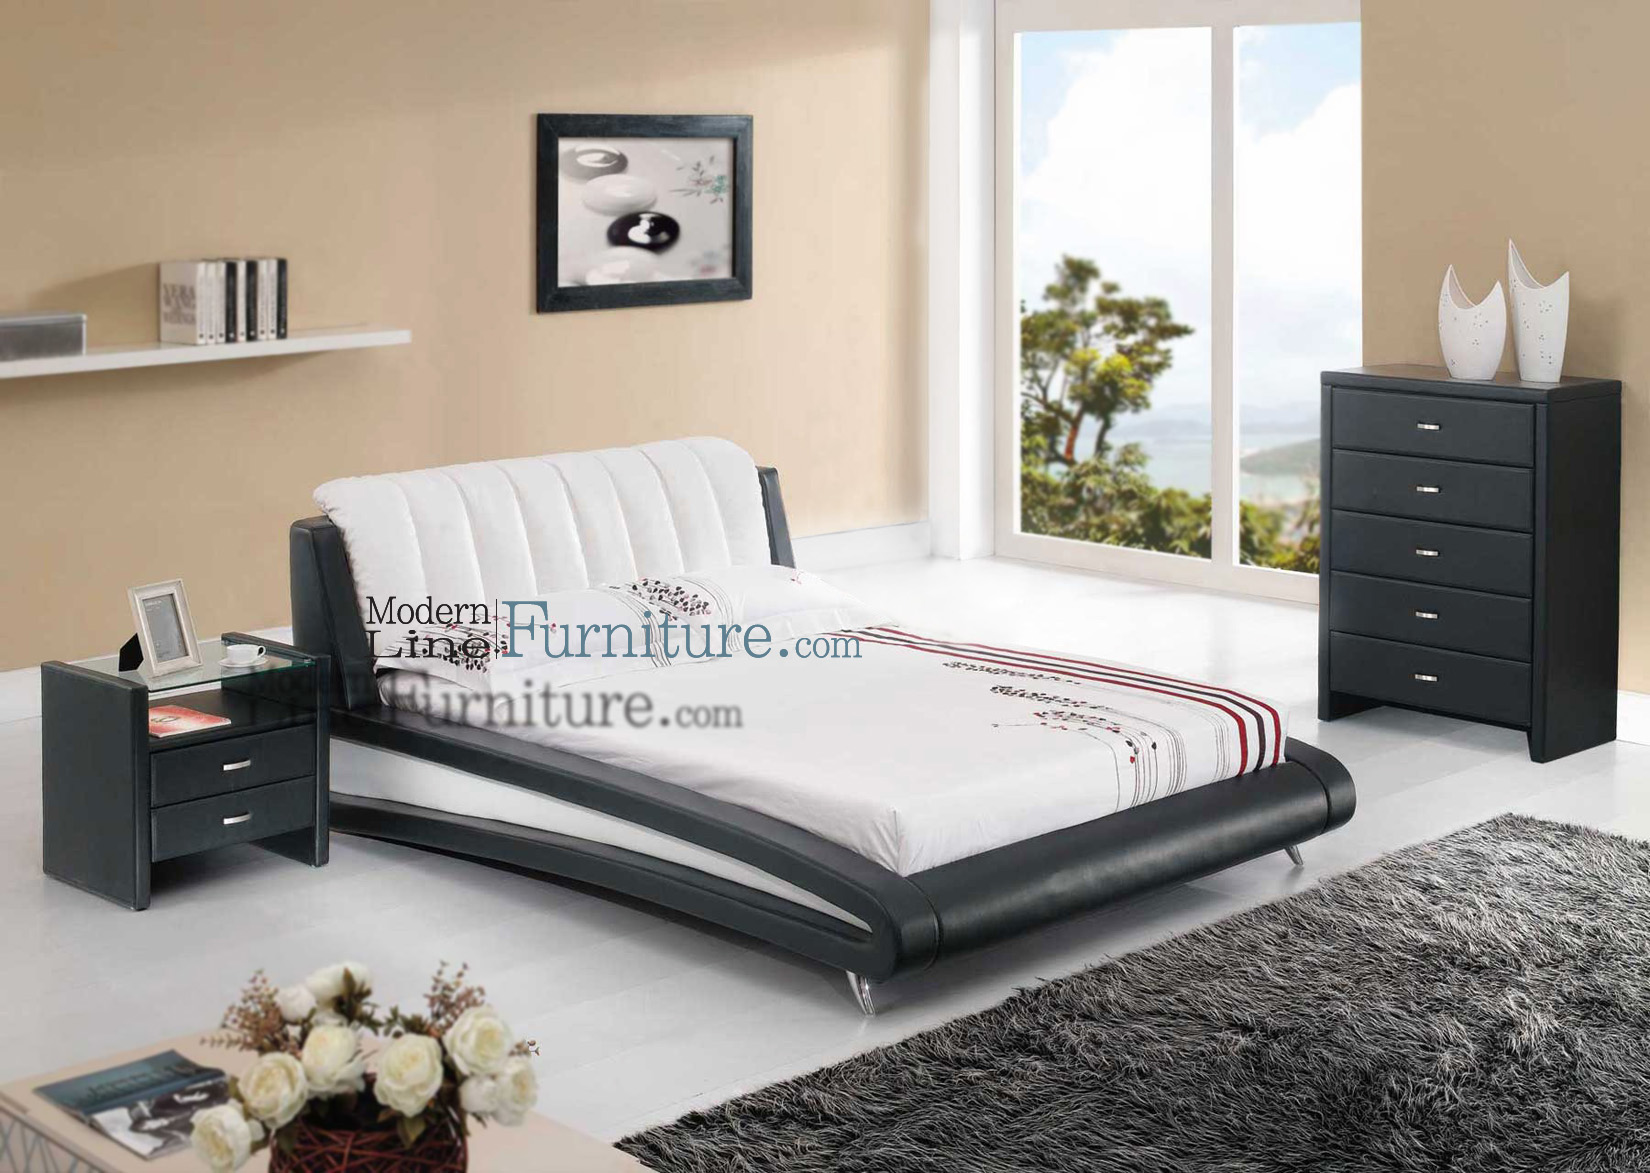 Sleek Modern  Full-Size Bedroom Set